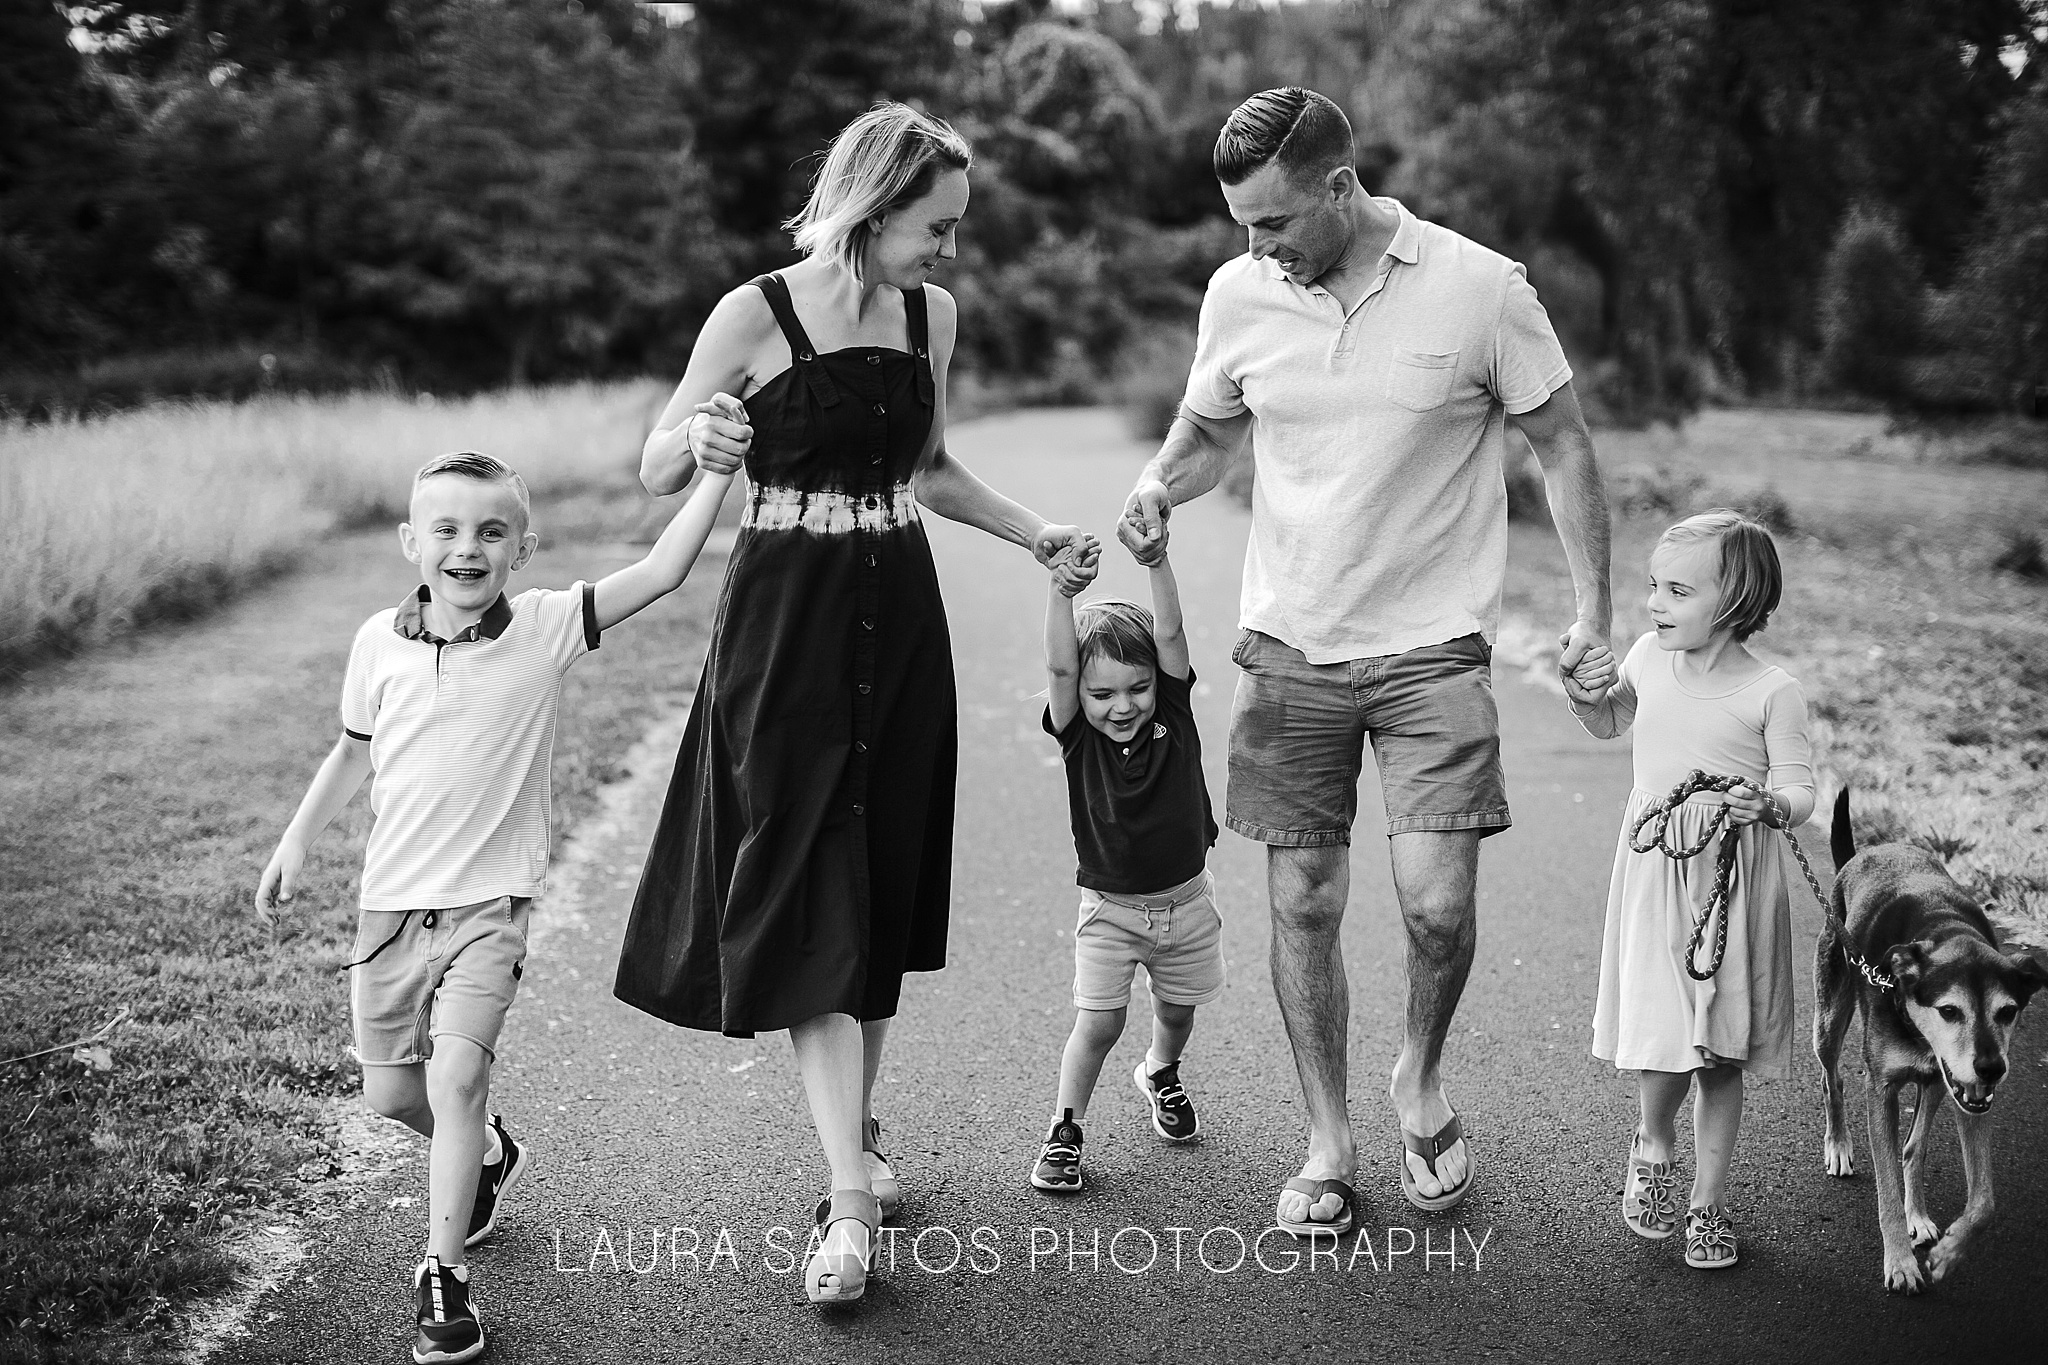 Laura Santos Photography Portland Oregon Family Photographer_1057.jpg